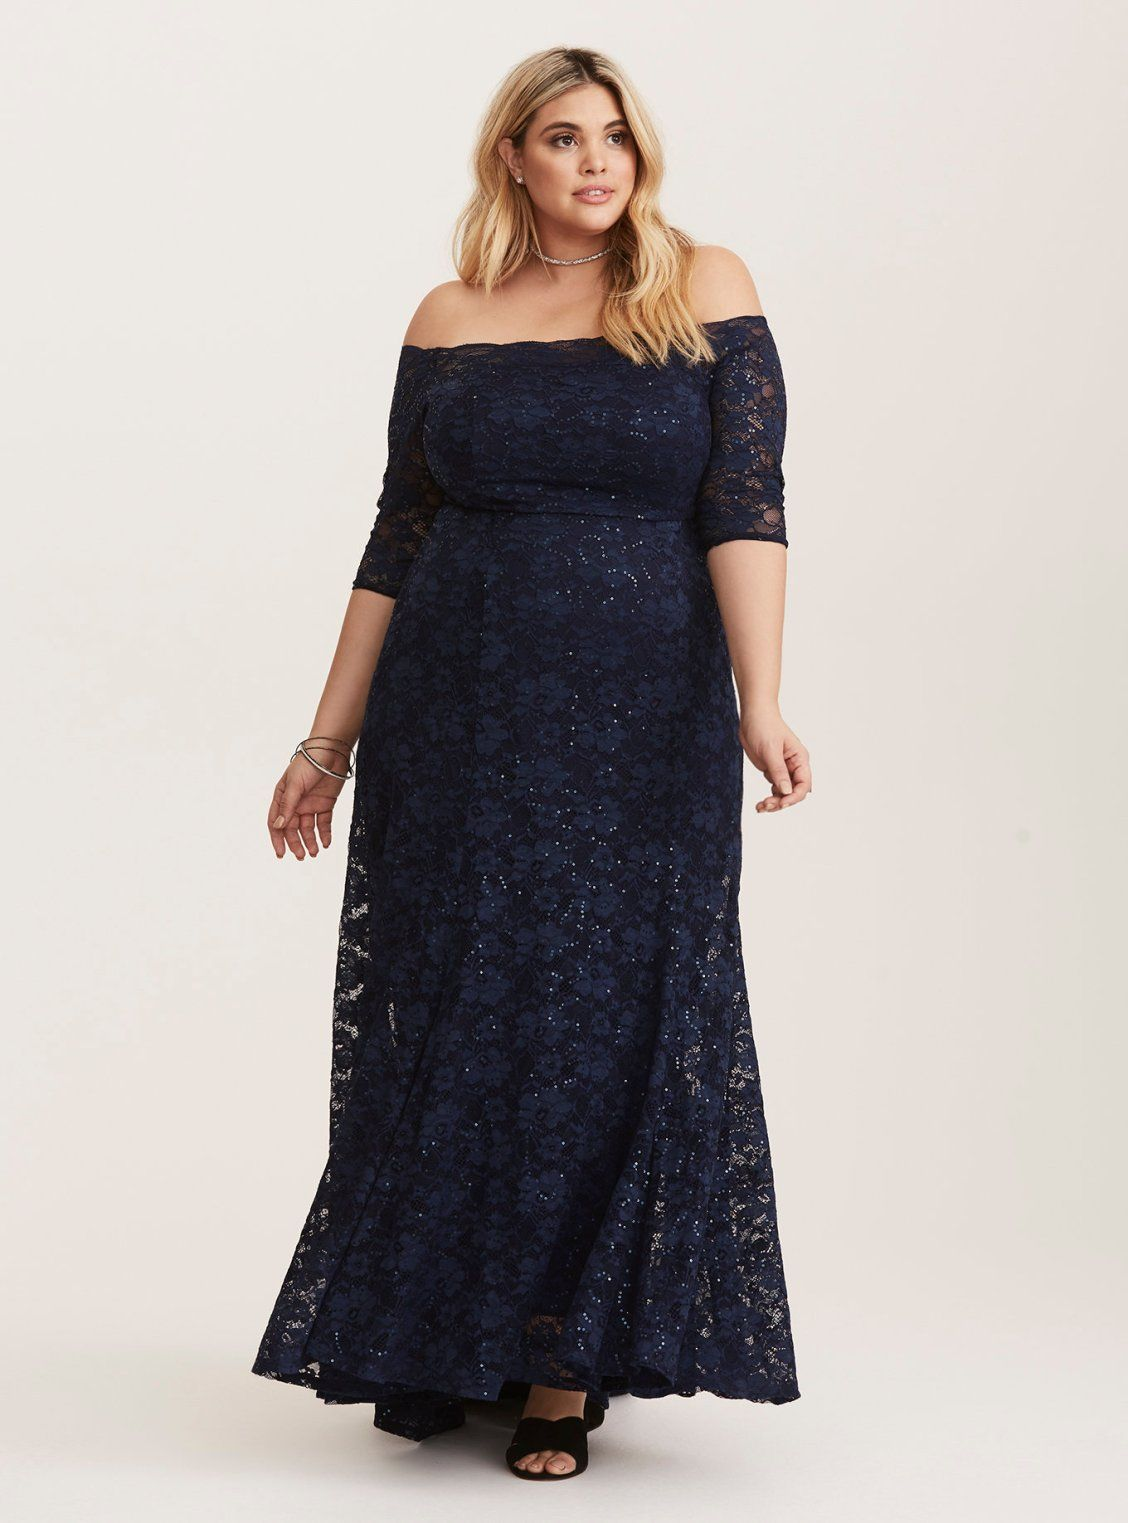 41a0aa45cec8 Find women's white, black, red, floral & printed plus size dresses at  Torrid. Our collection features maxi dresses, bodycon dresses, LBD's and  more!